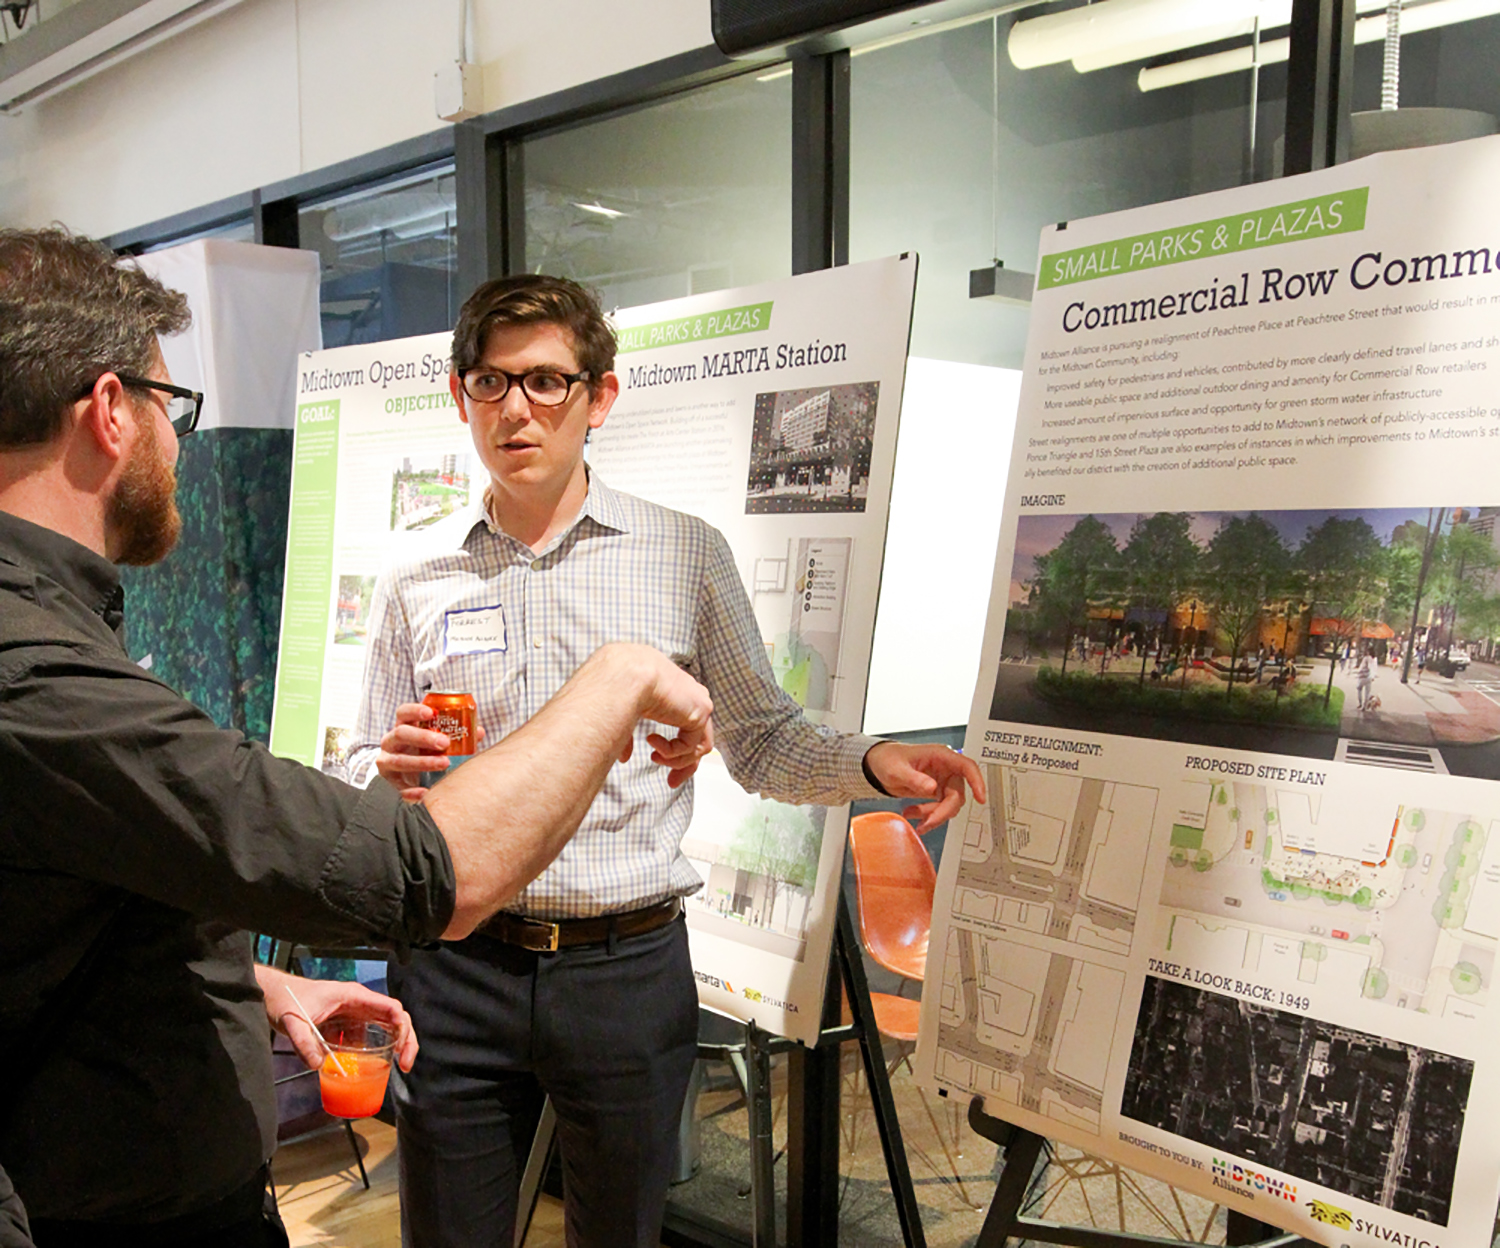 Midtown Alliance project manager for transportation Forrest Rose engages with a Midtown community member at a public informational meeting.